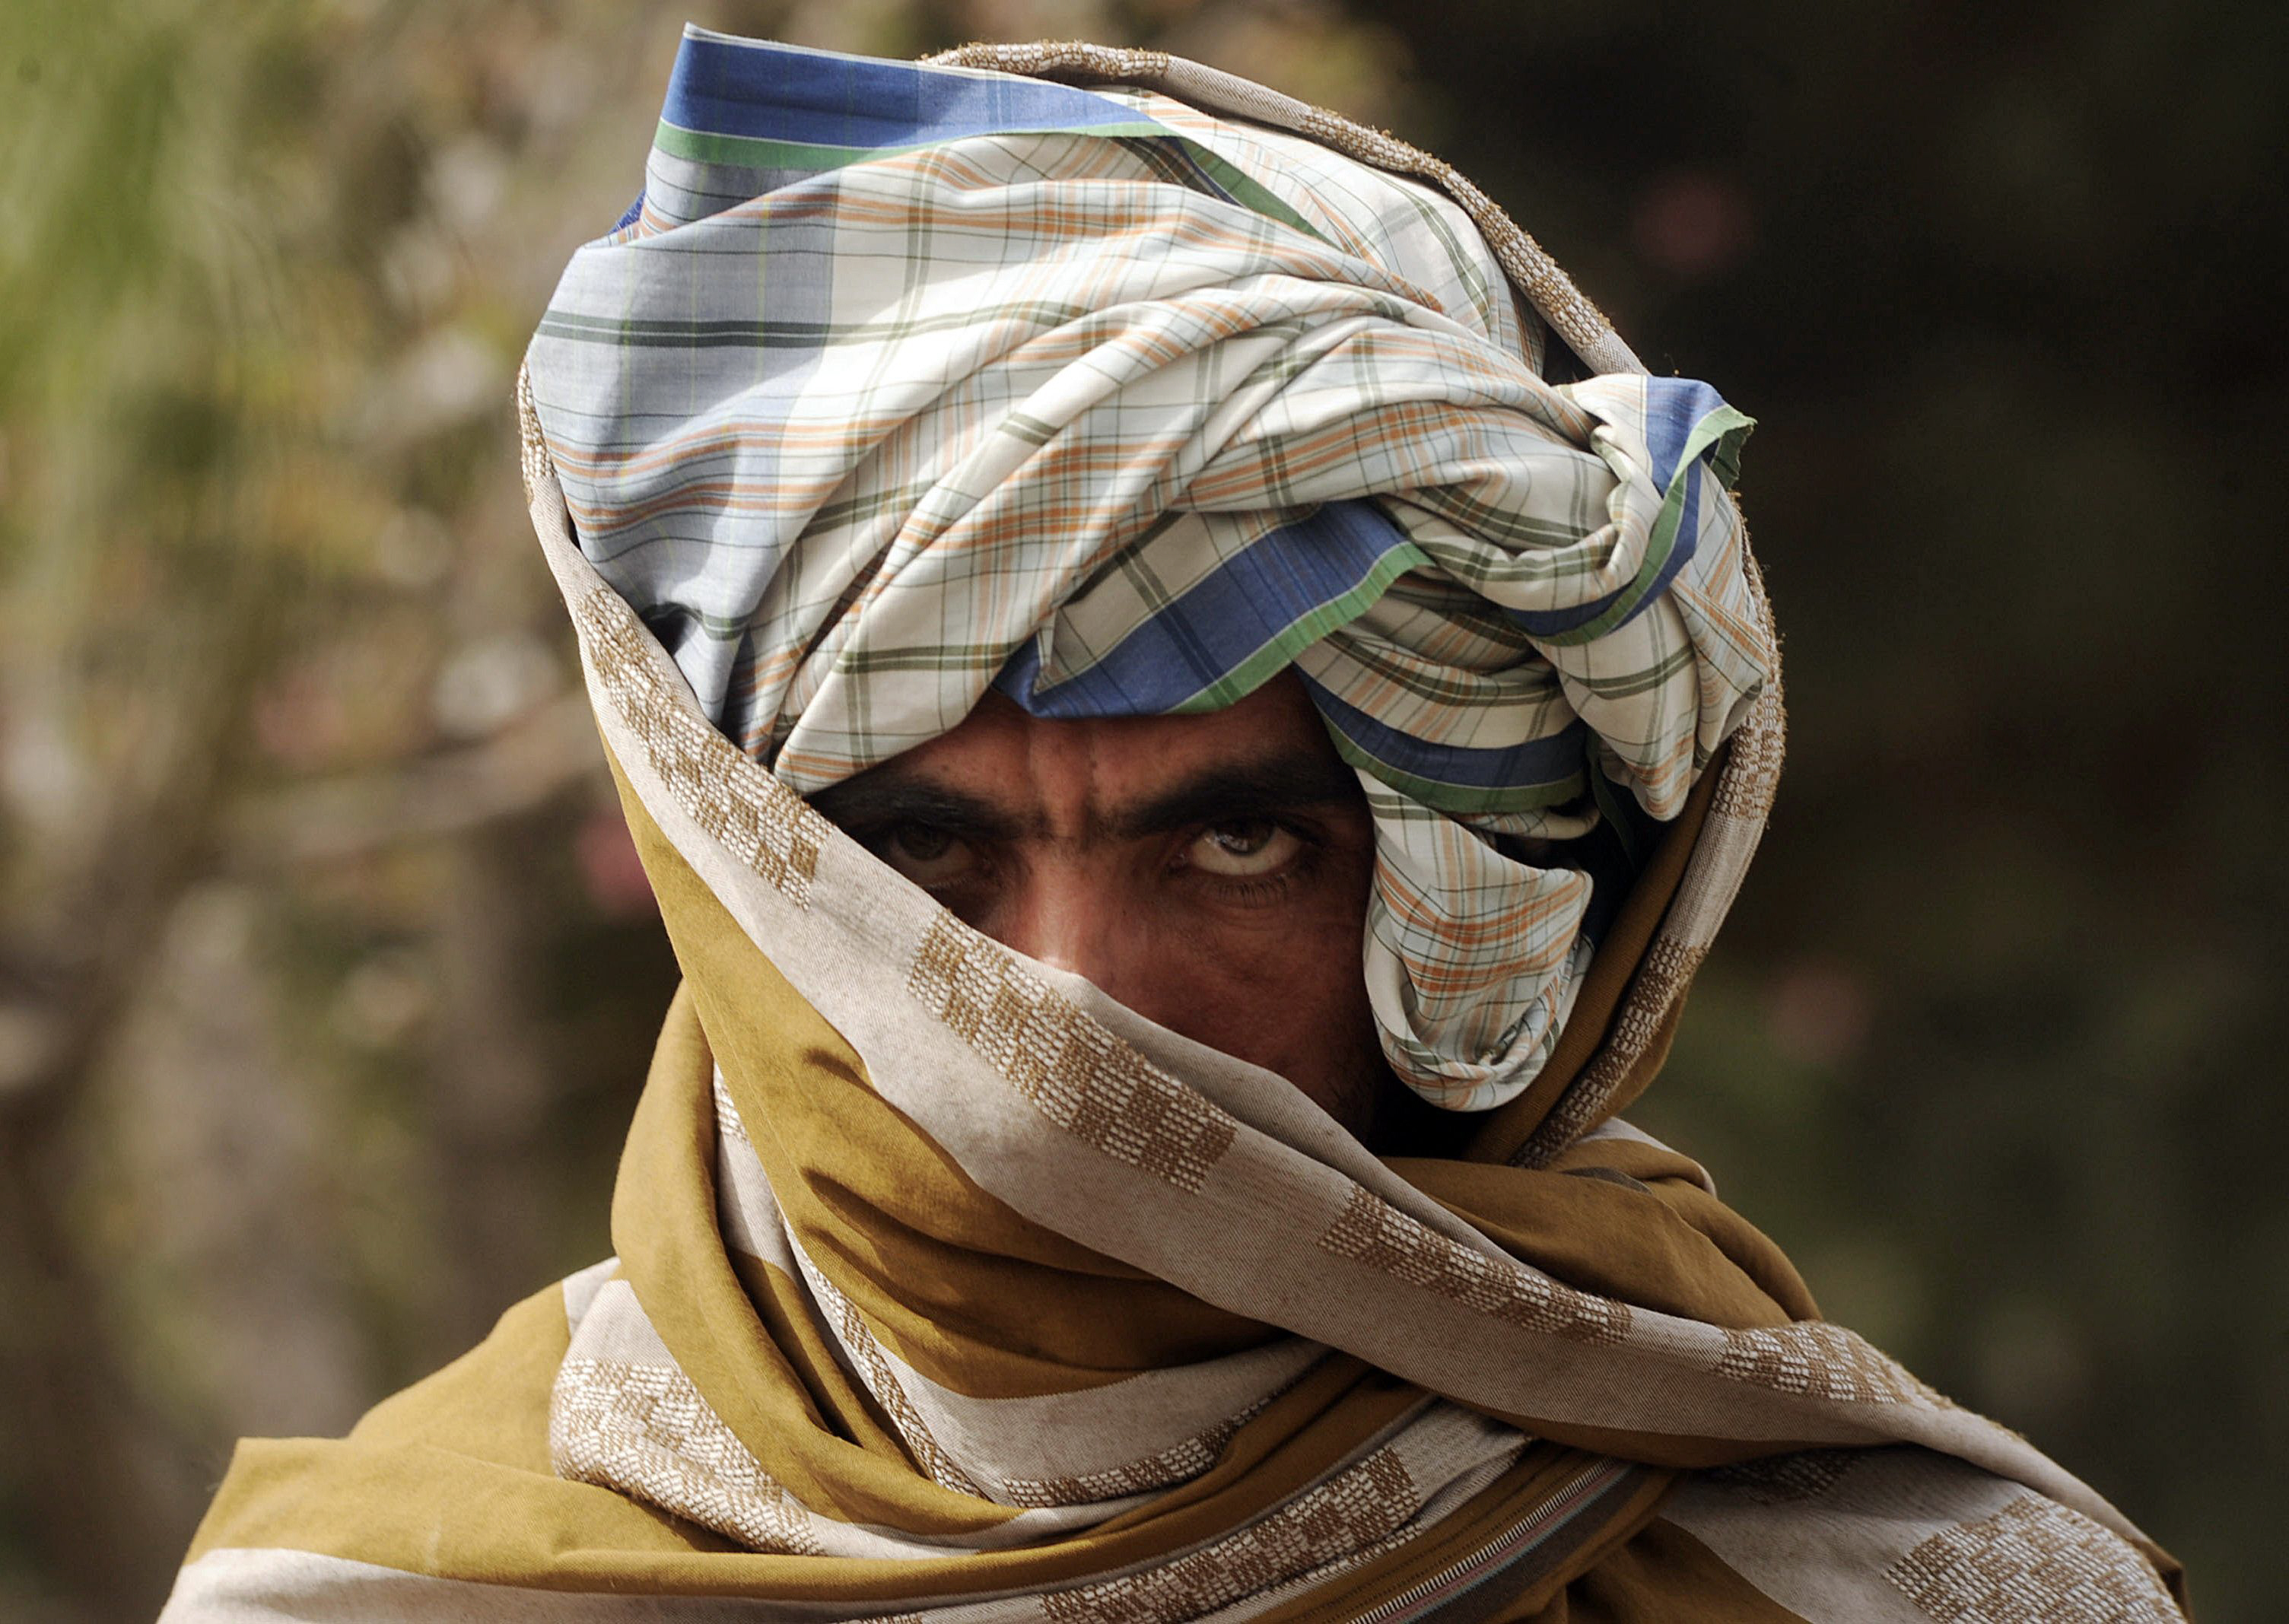 'Our people' in the Taliban